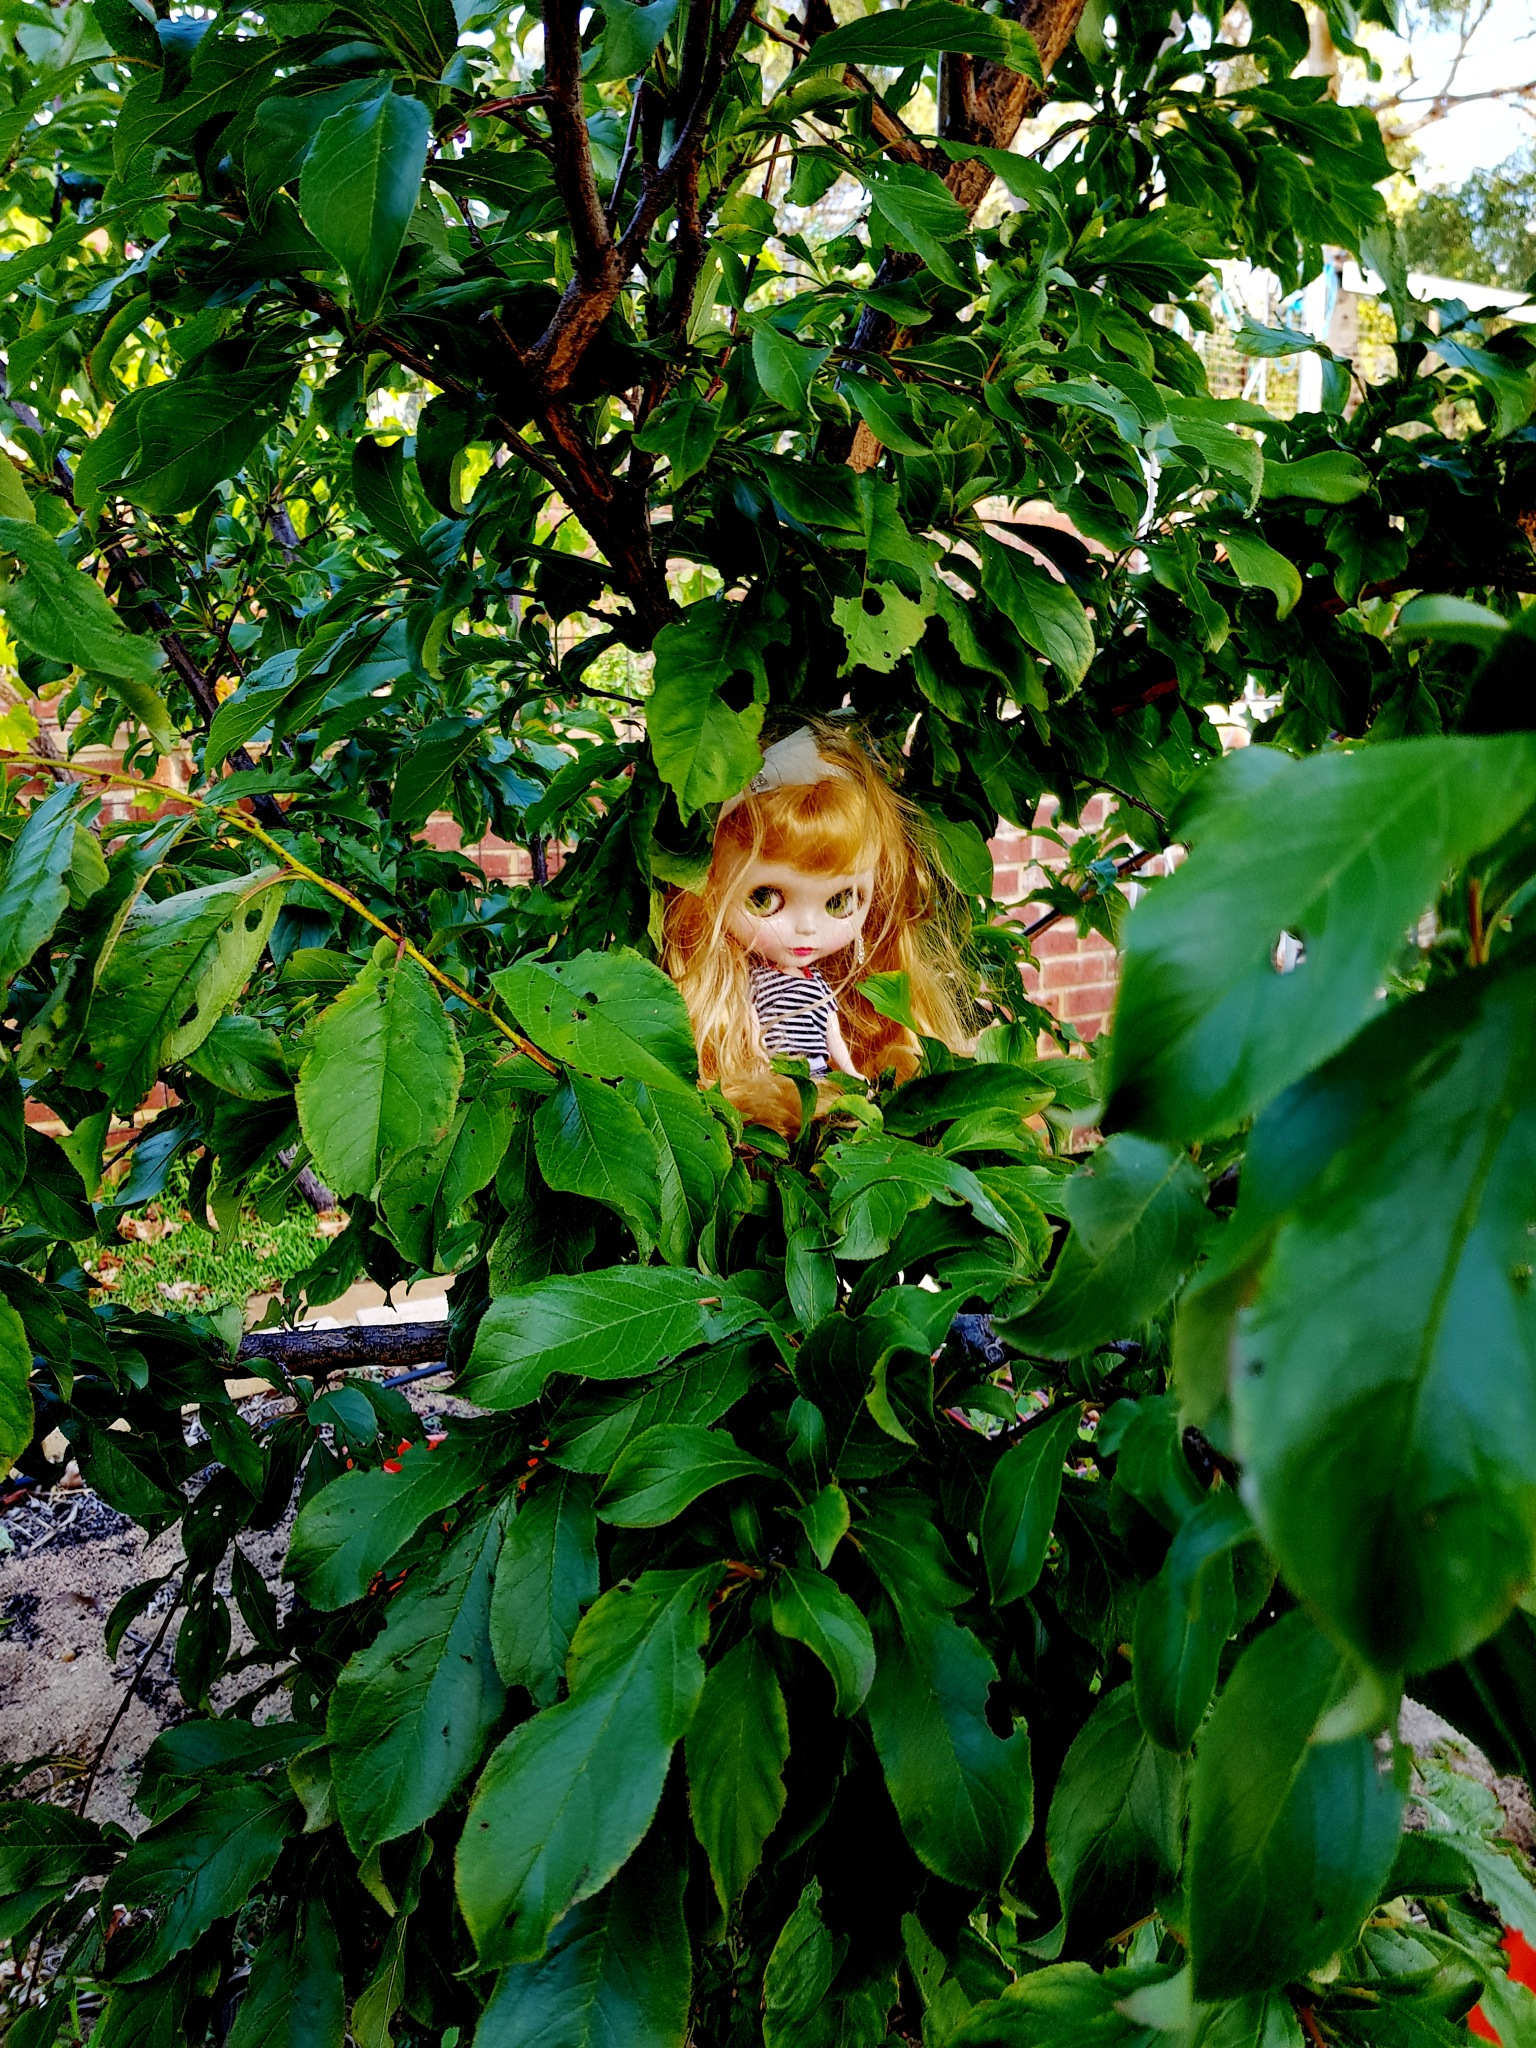 claire in the tree by TammyLouiseEatwell